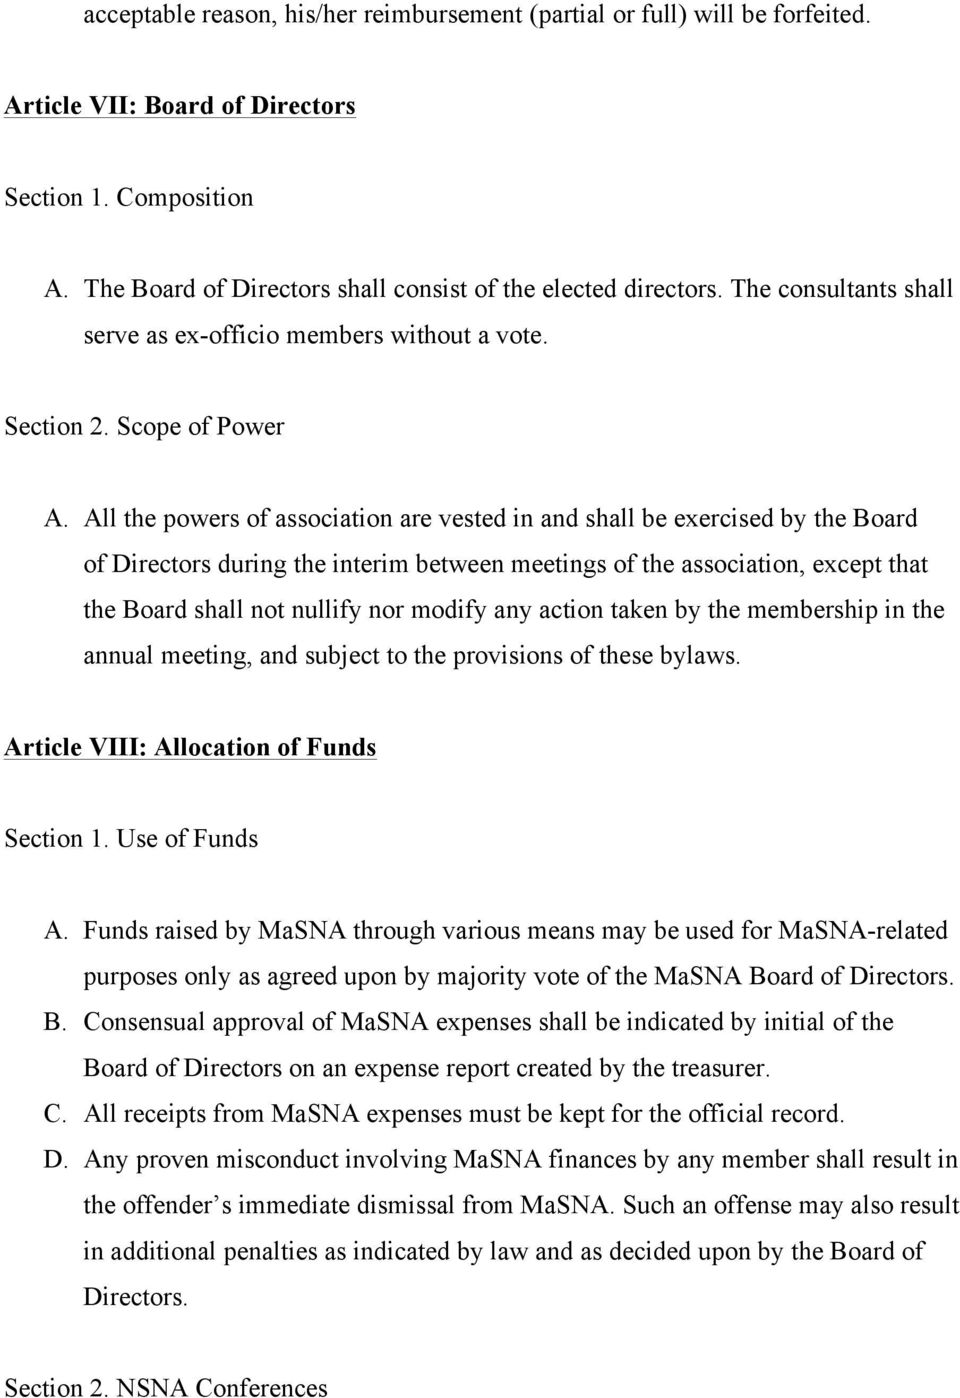 All the powers of association are vested in and shall be exercised by the Board of Directors during the interim between meetings of the association, except that the Board shall not nullify nor modify